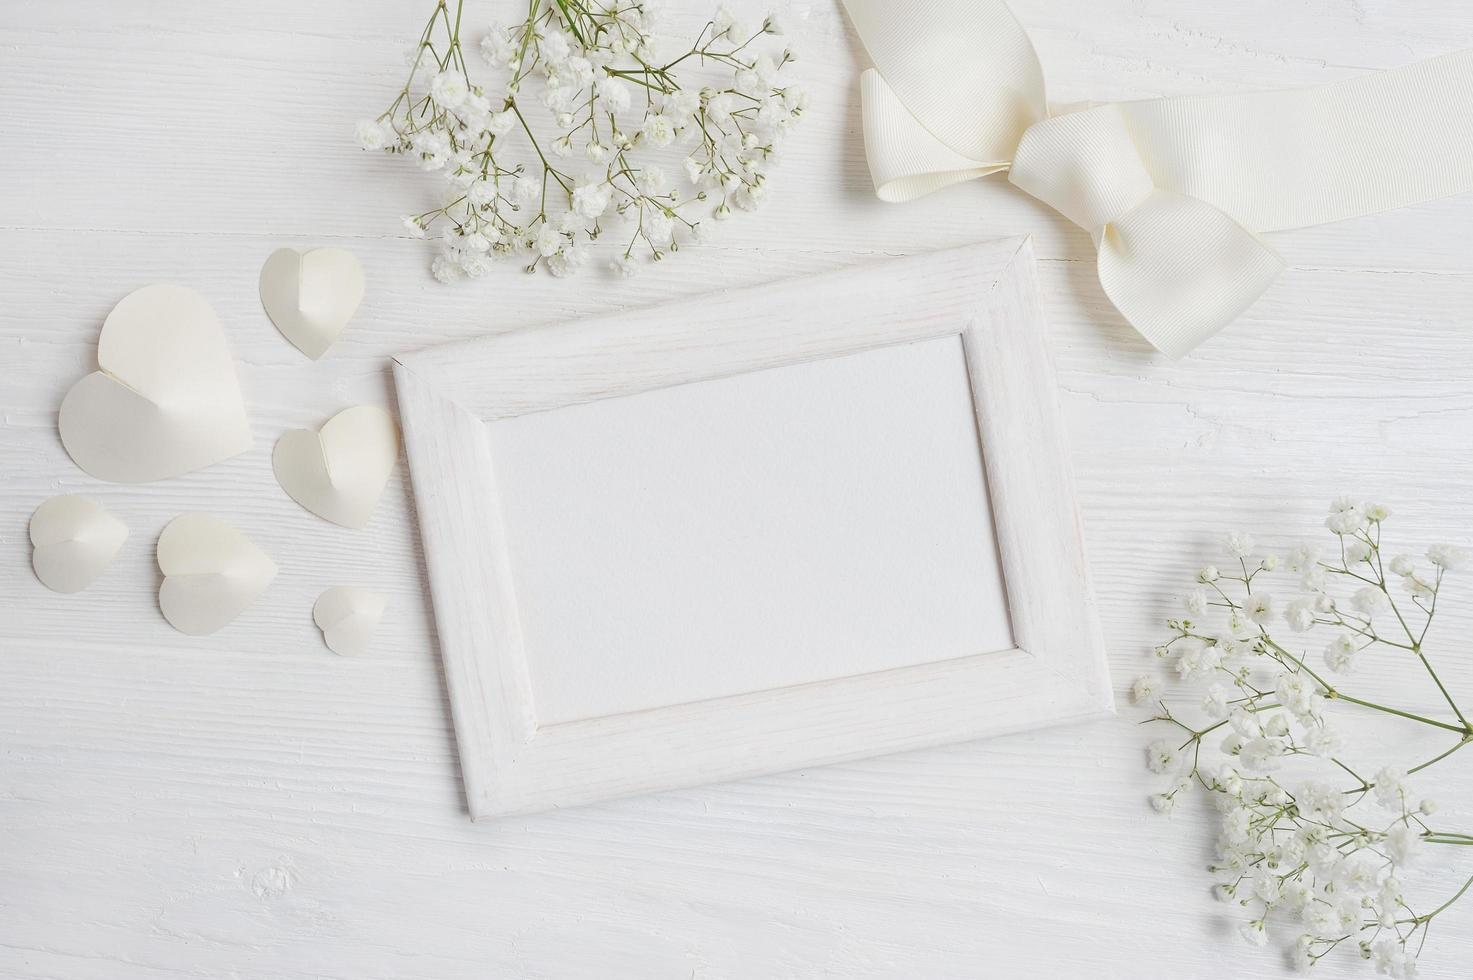 White wooden frame with hearts and flowers photo